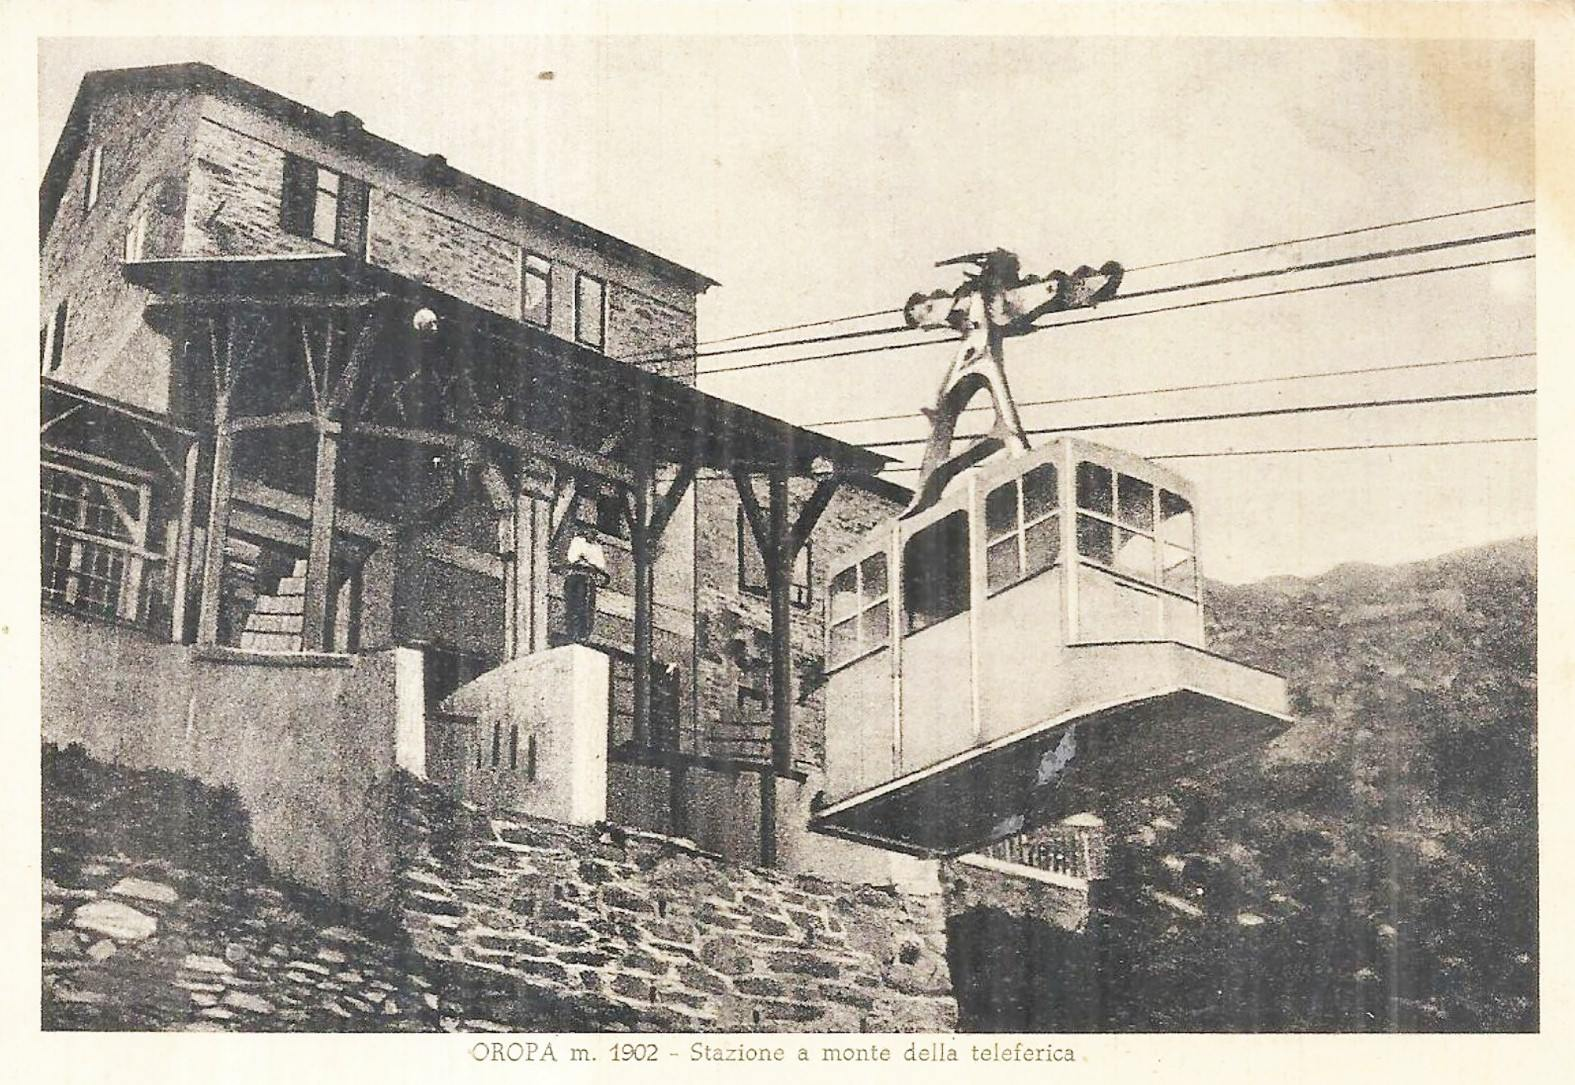 Oropa – Stazione a monte della teleferica – 1949